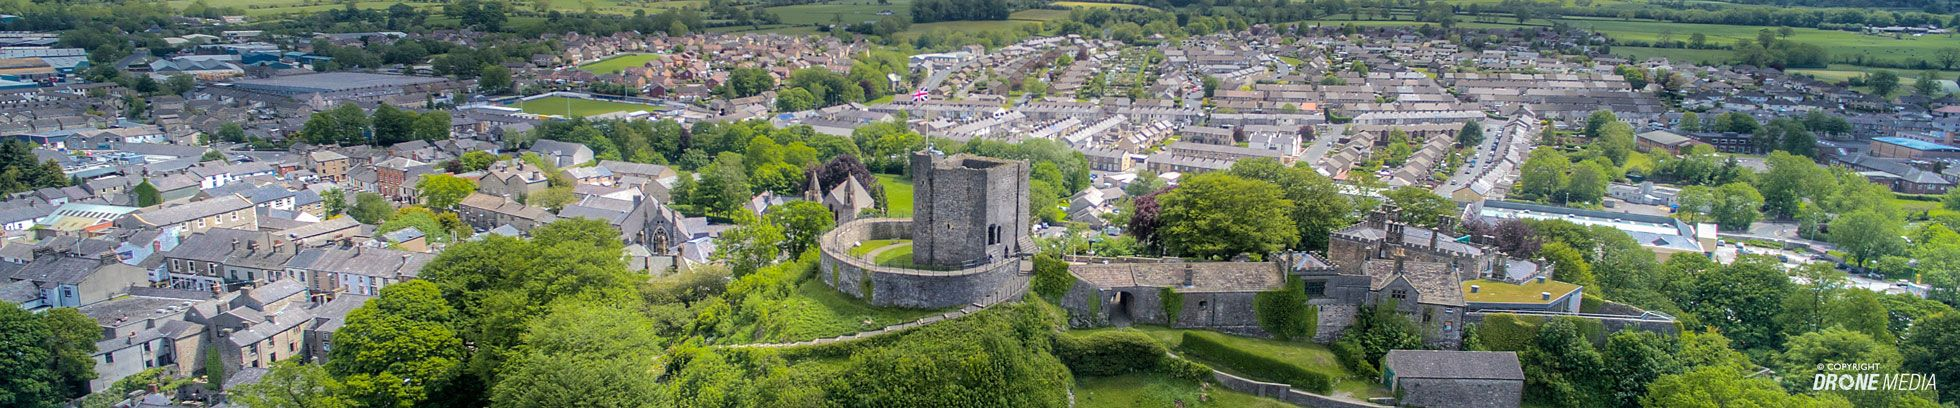 View from the north towards the castle keep. Photo by kind permission of Drone Media.